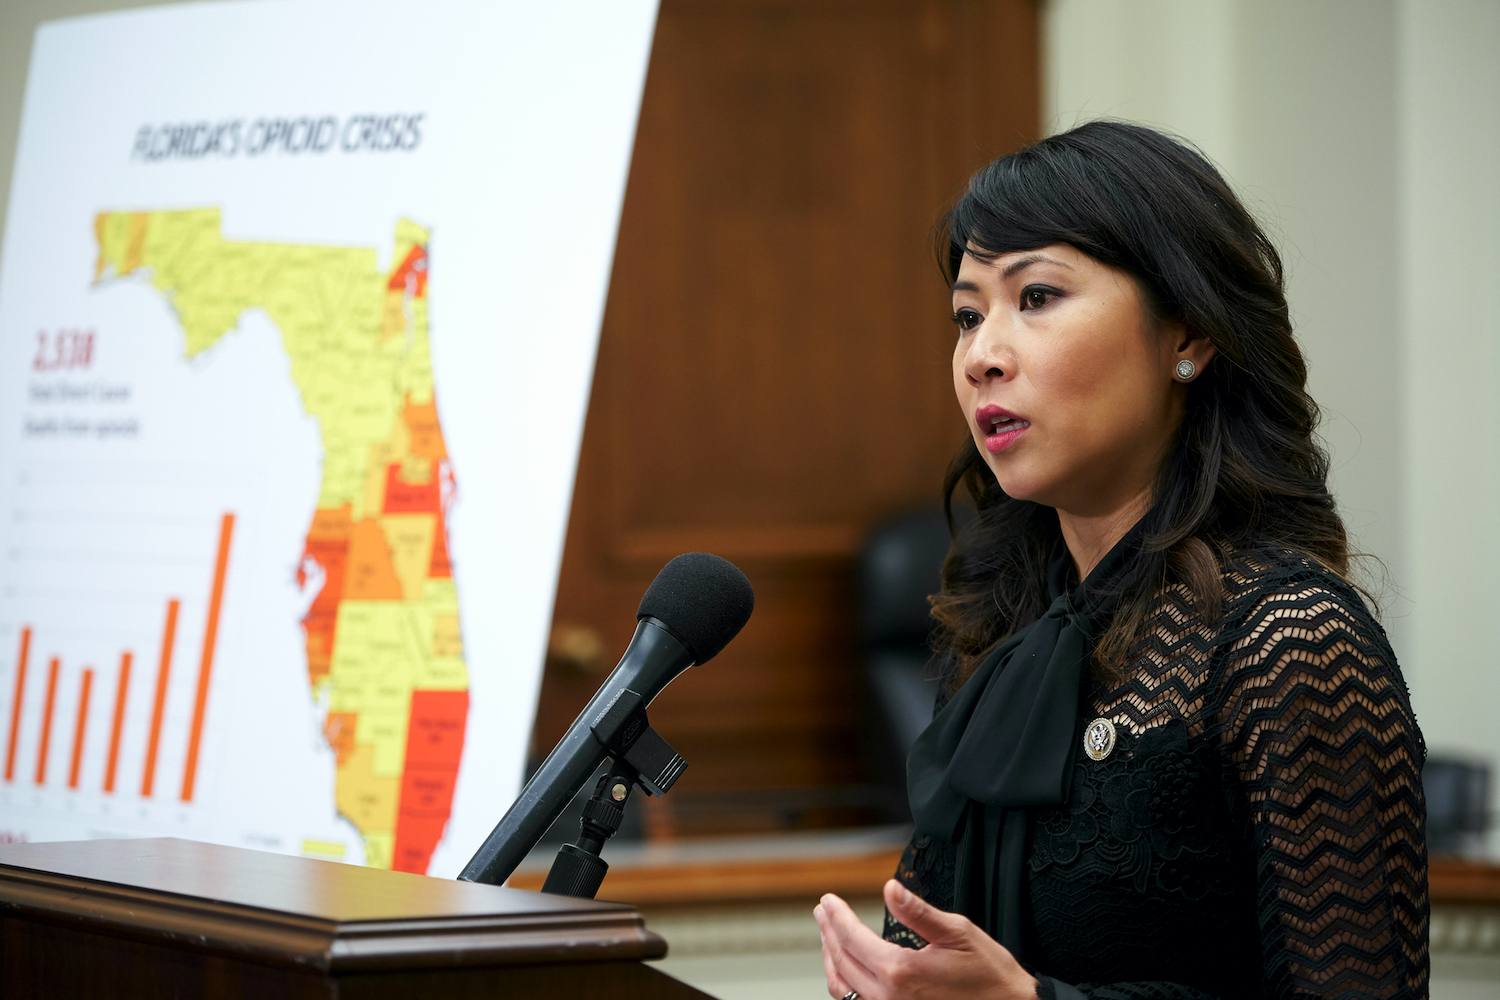 Rep. Stephanie Murphy delivers a speech with a poster of the state of Florida in the background.